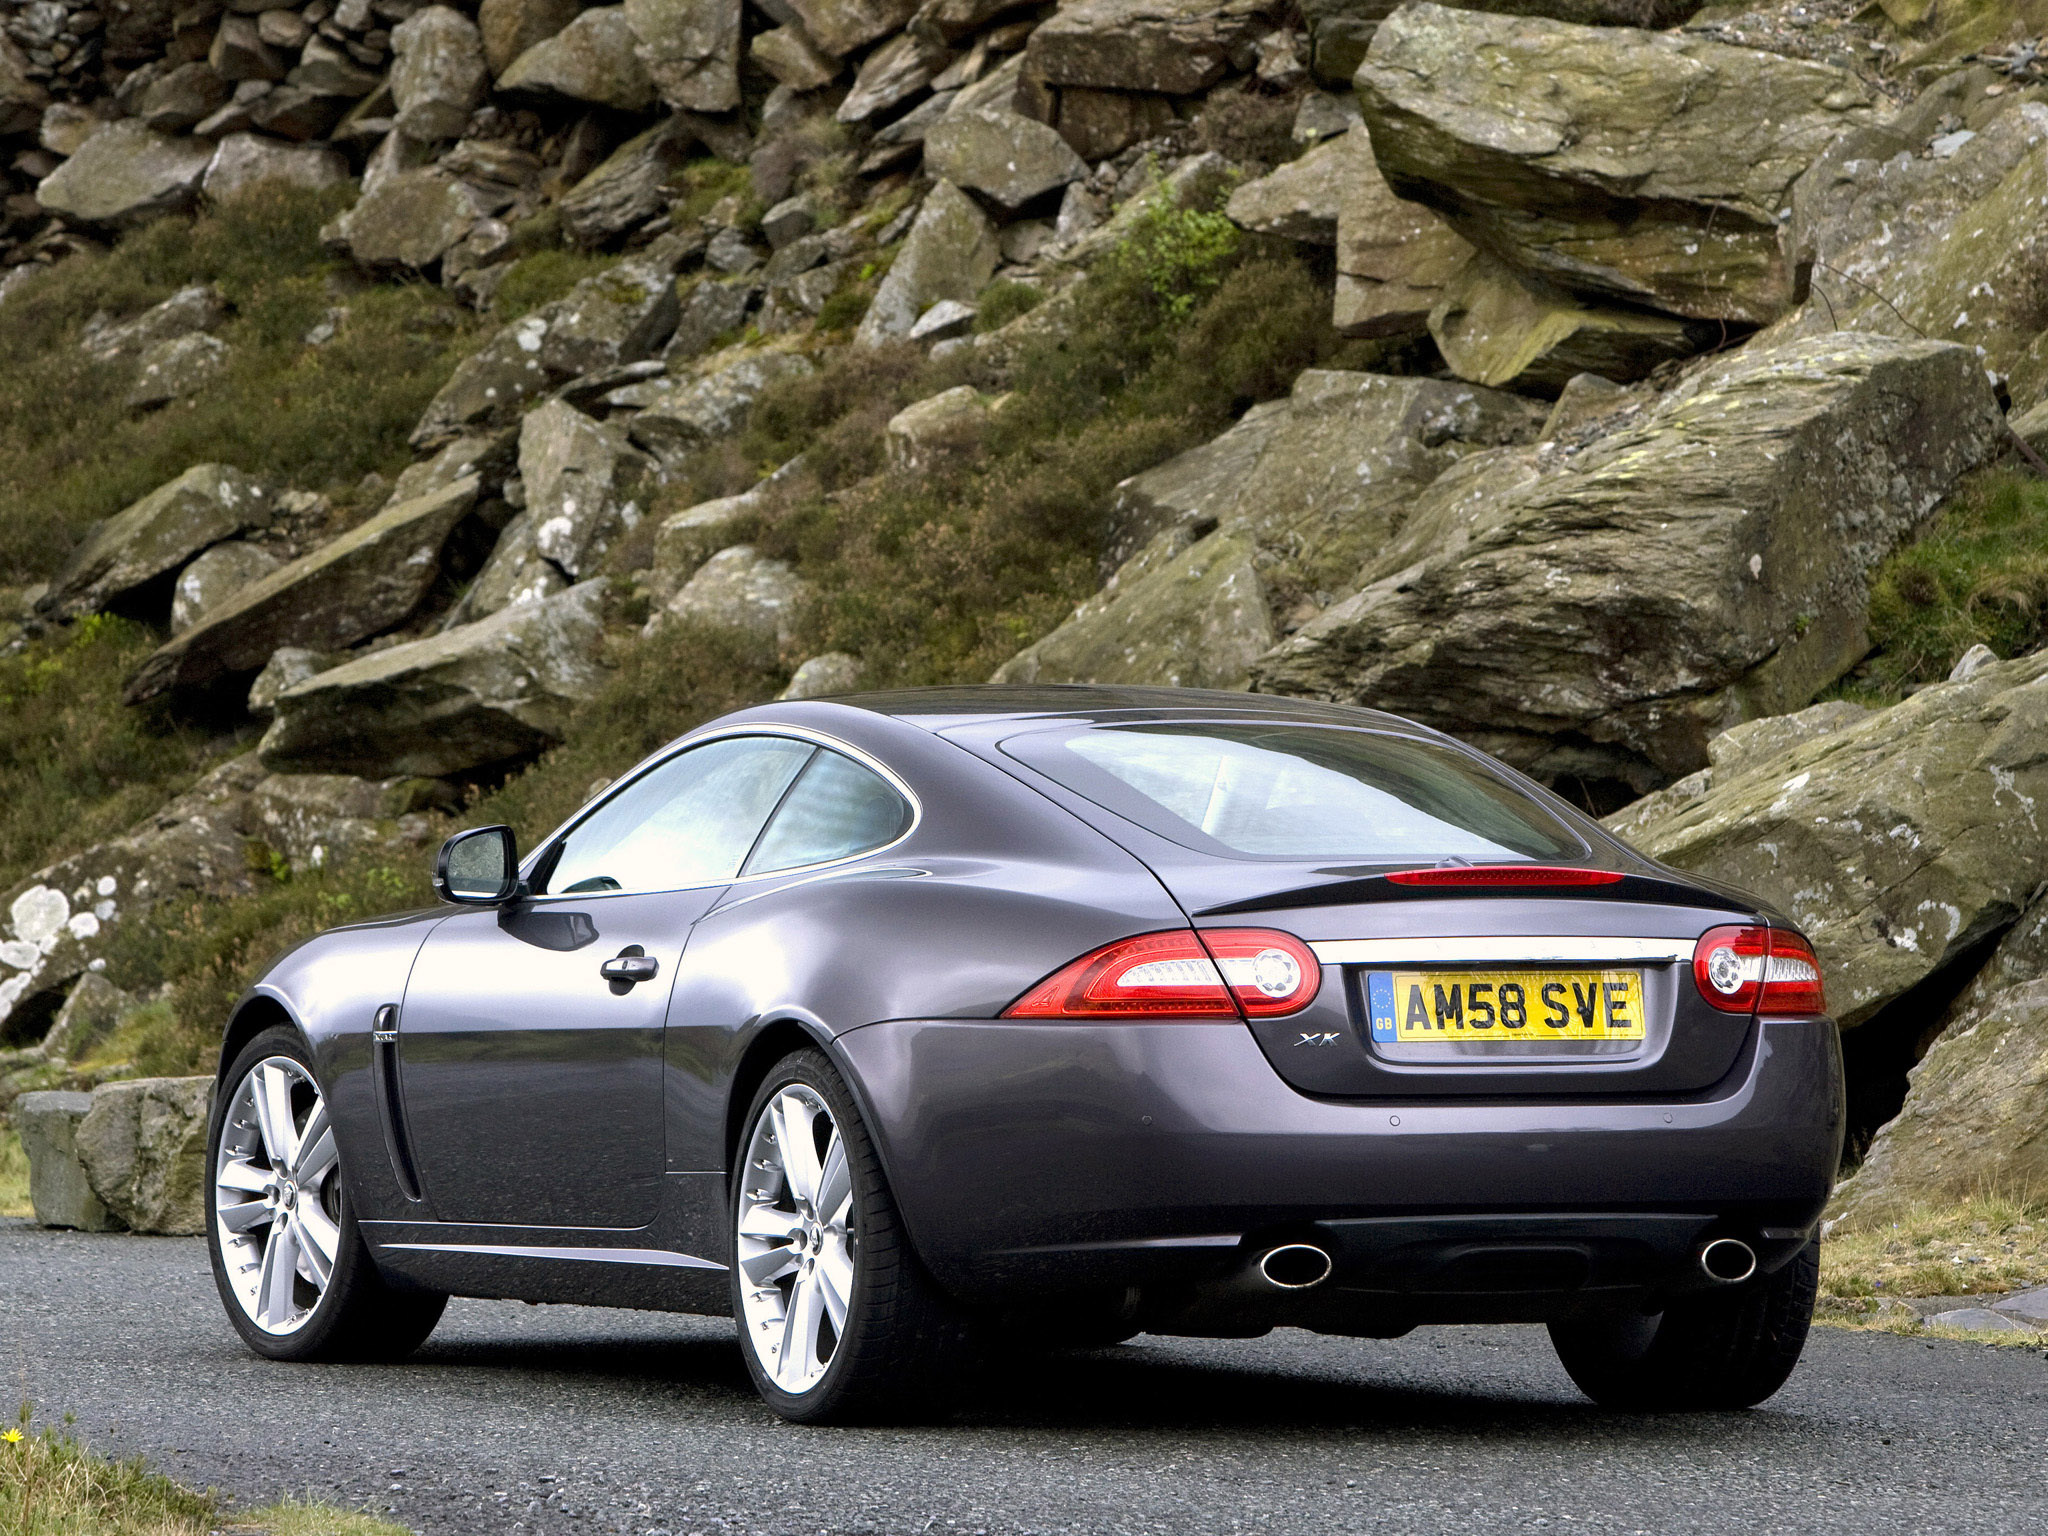 2009 Jaguar Xk coupe ii - pictures, information and specs ...